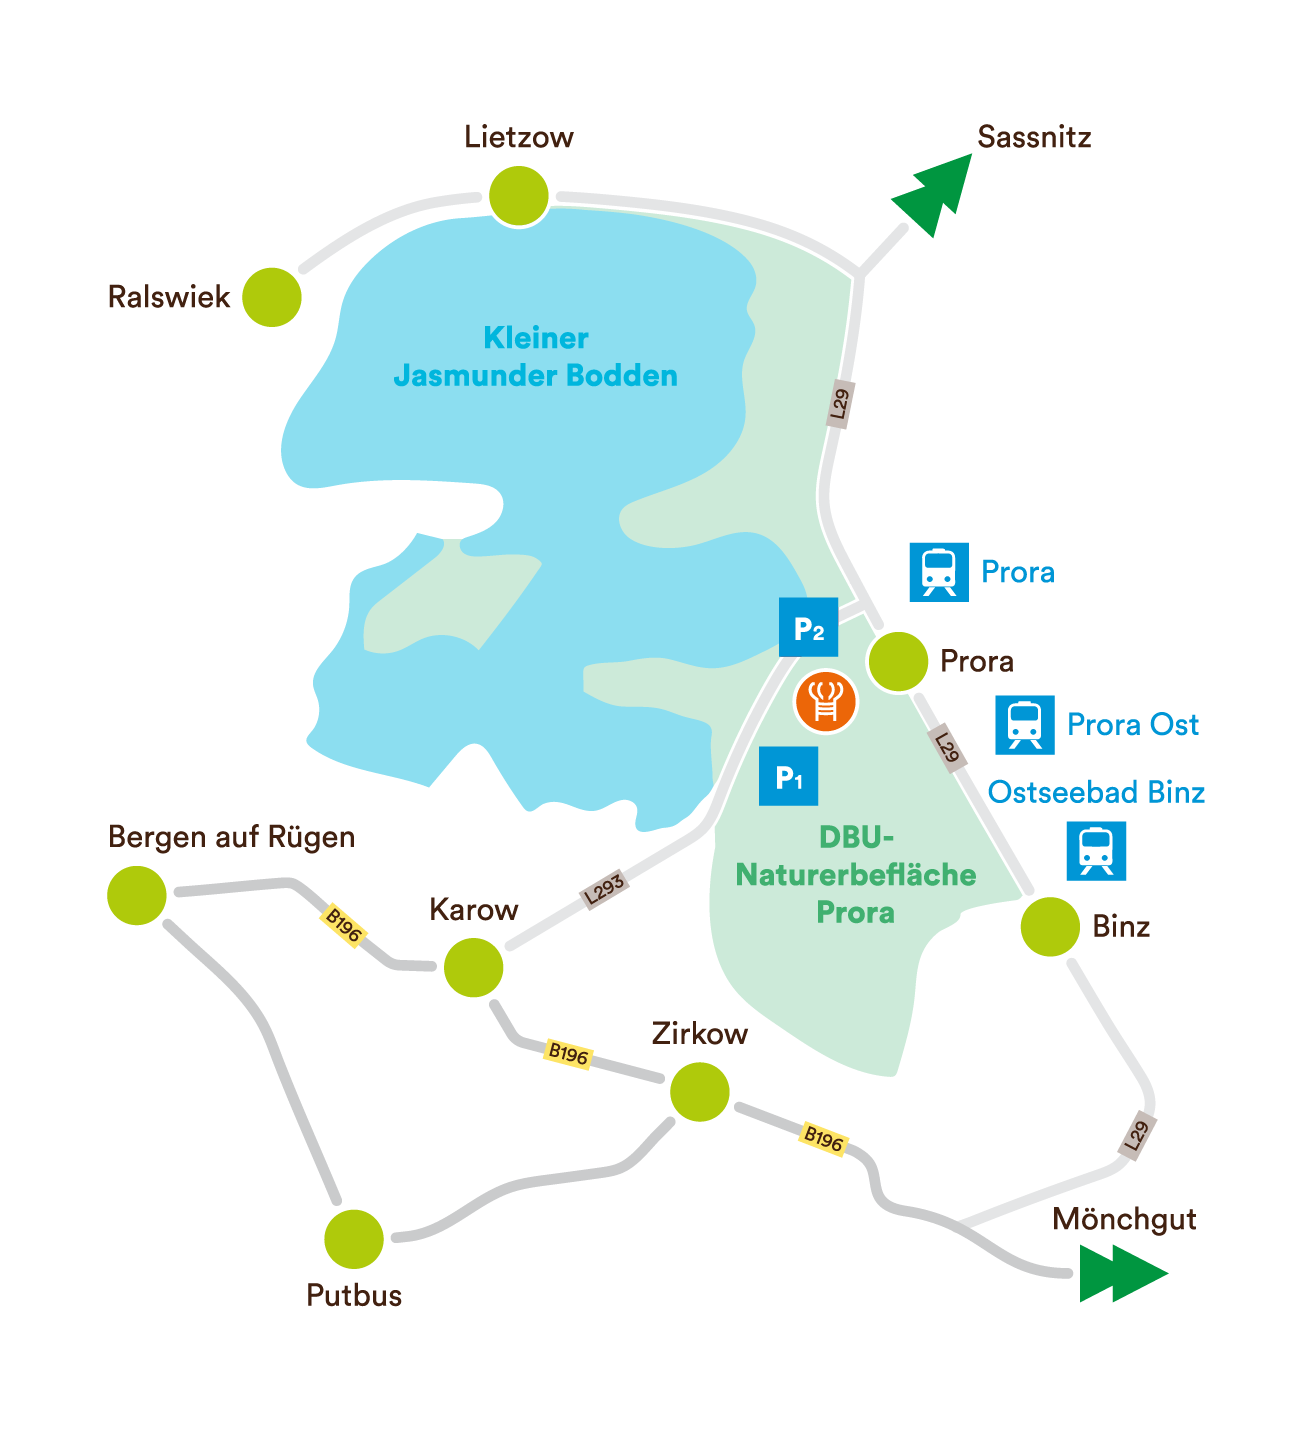 Directions to the Treetop Walk in the Naturerbe Zentrum Rügen